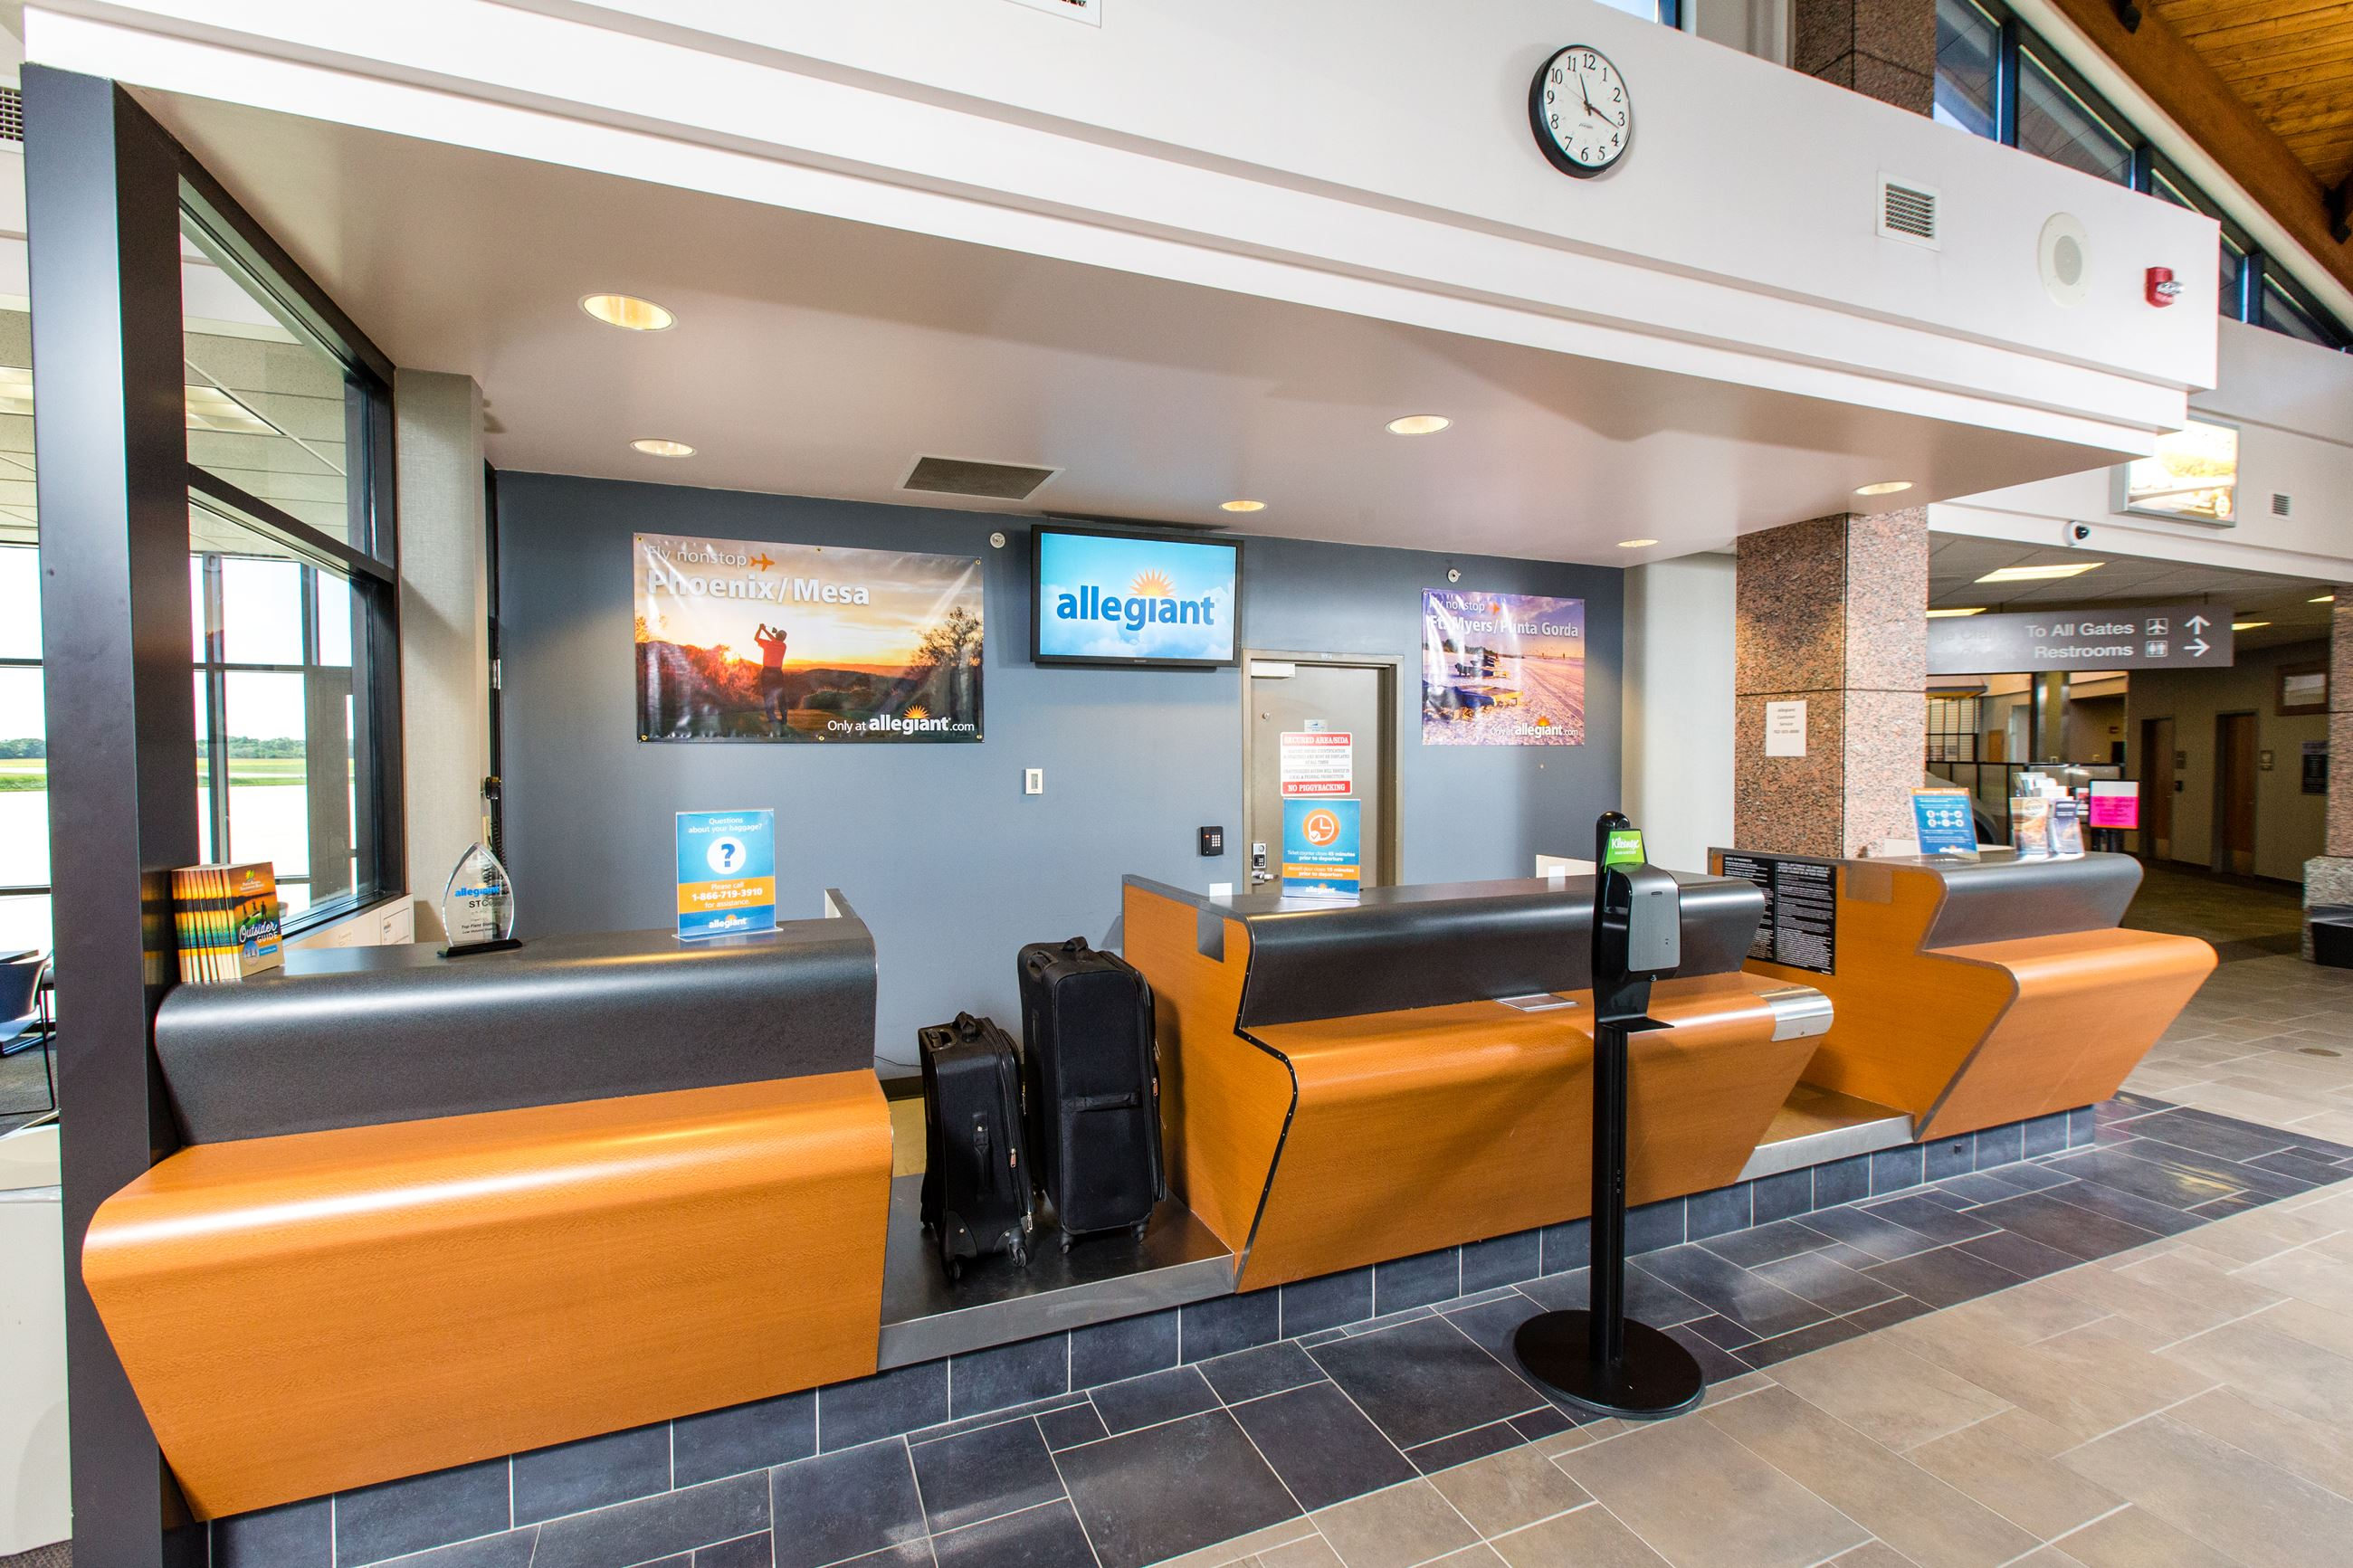 Allegiant ticket counter with bags